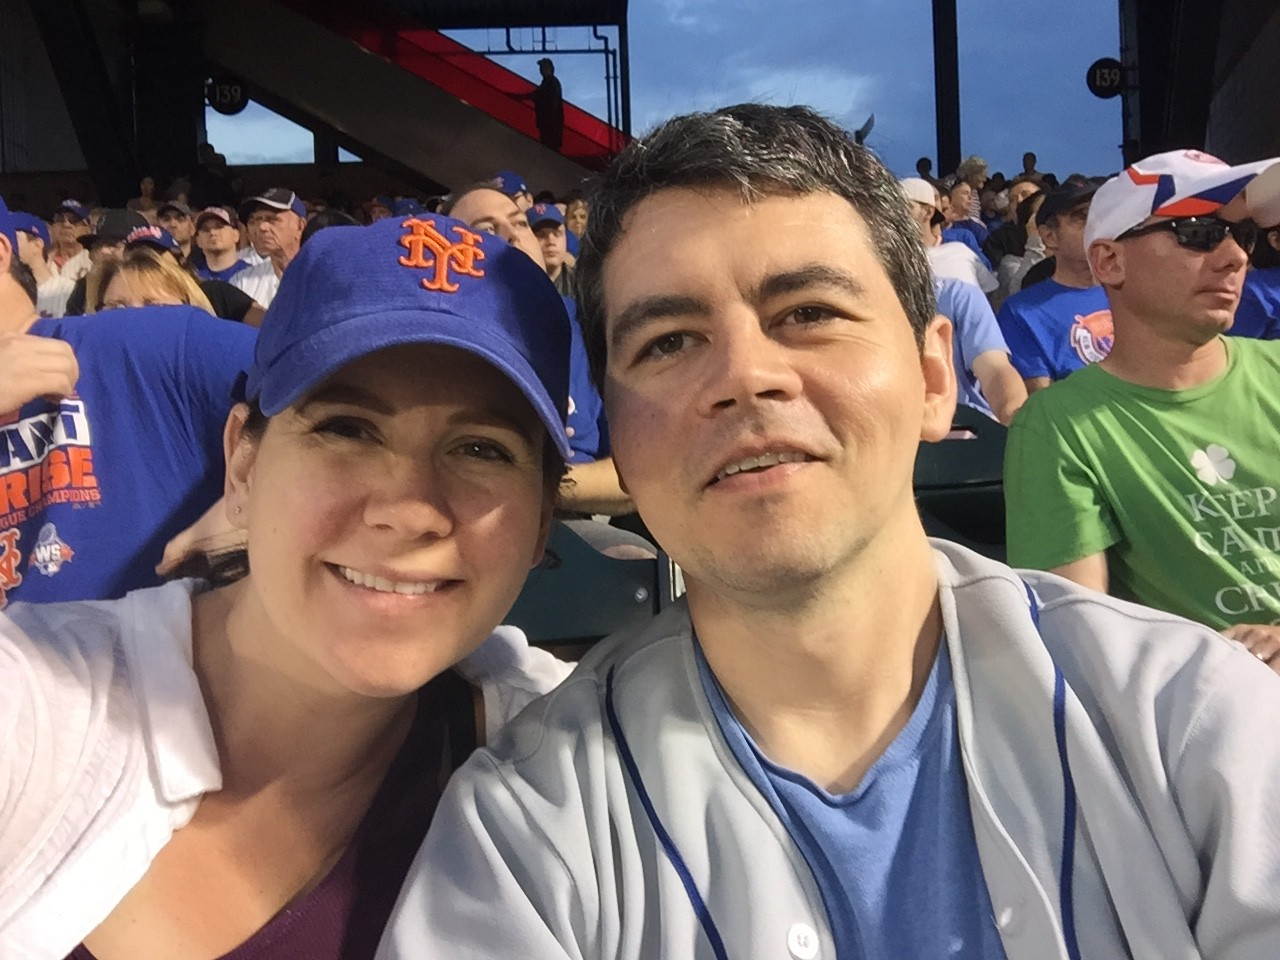 Group photo of Mary Jane Skelly (PhD '15) and Michael Klotz (JD '15) at baseball game